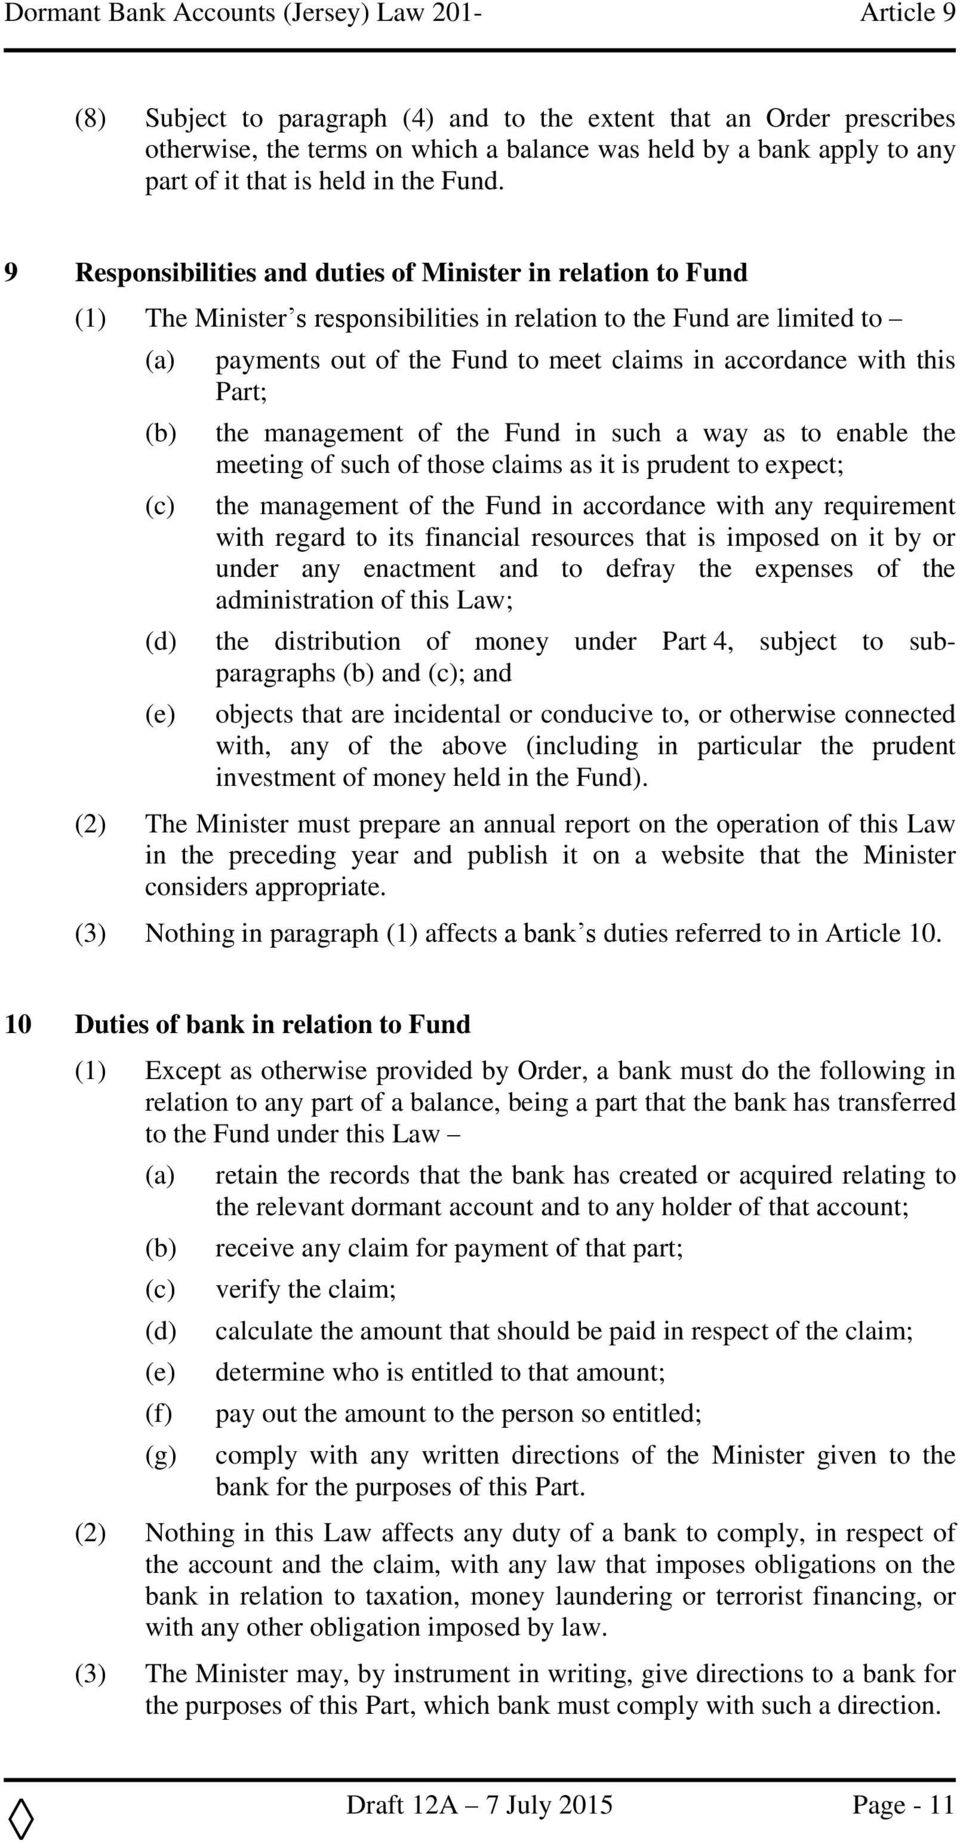 9 Responsibilities and duties of Minister in relation to Fund (1) The Minister s responsibilities in relation to the Fund are limited to (d) (e) payments out of the Fund to meet claims in accordance